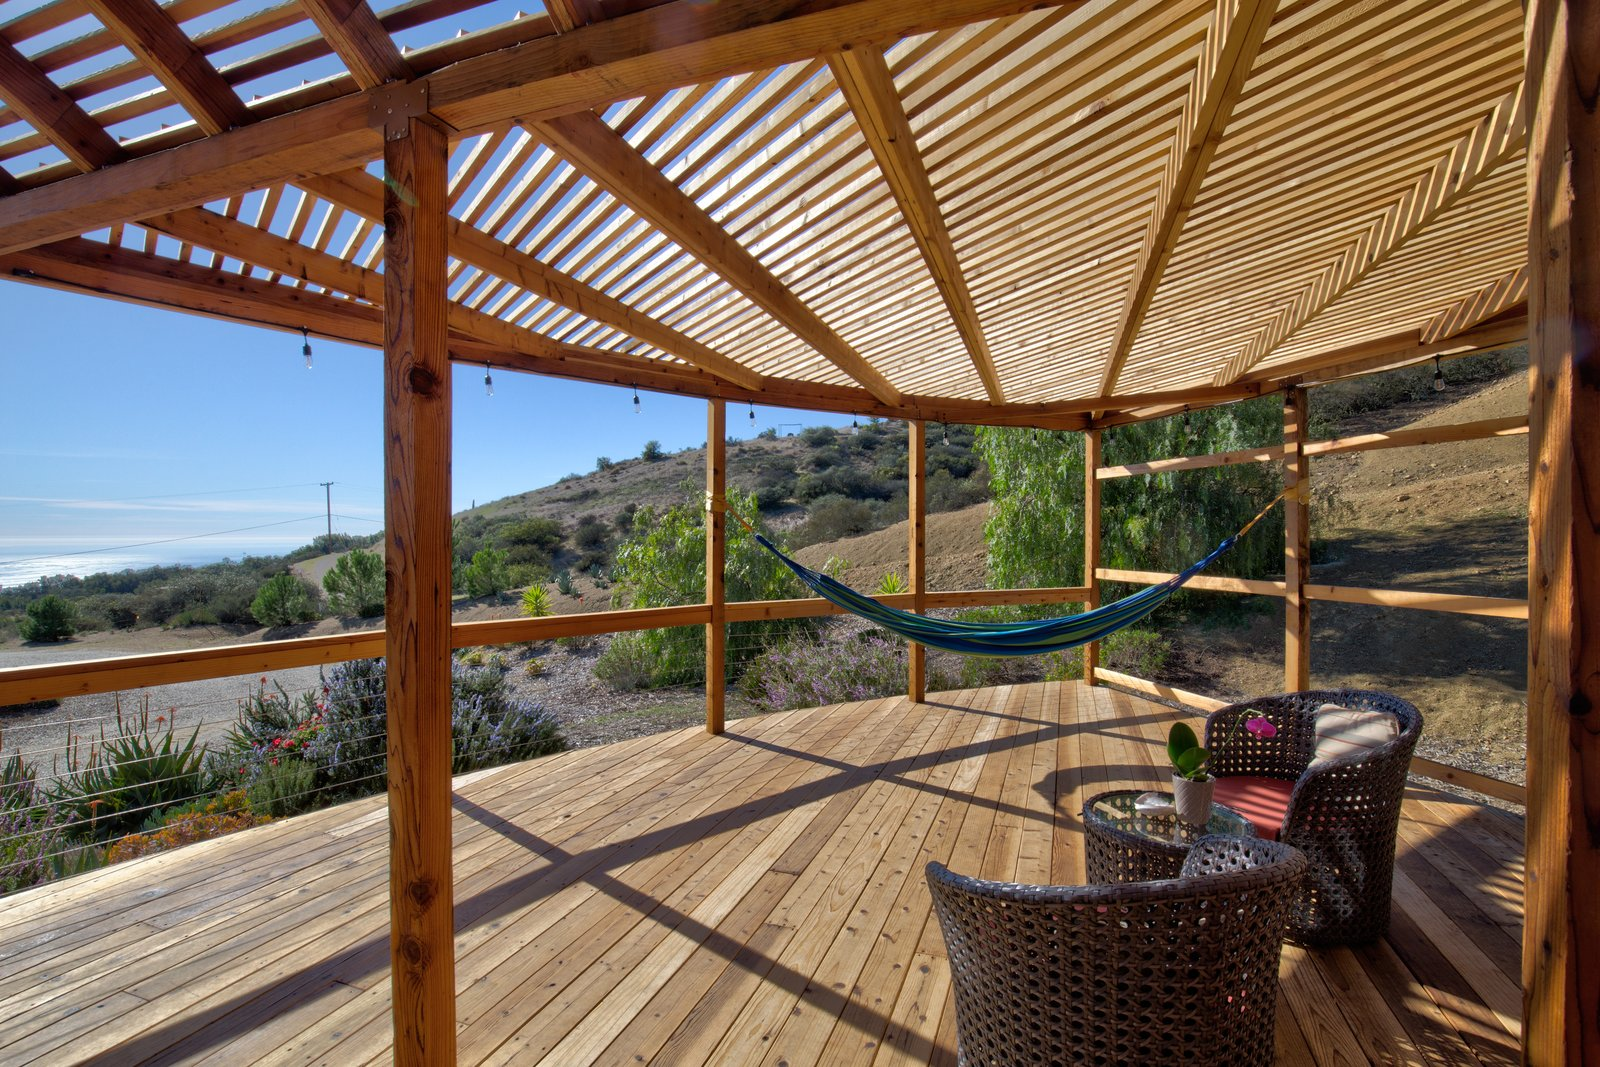 Outdoor, Wood Patio, Porch, Deck, Front Yard, Wire Fences, Wall, Desert, Decking Patio, Porch, Deck, Trees, and Shrubs The deck has multiple lounge spaces, including two hammocks, and would make for an inspiring, open-air yoga studio.  Photo 3 of 10 in This Santa Barbara Yurt Is the Ultimate Place to Recharge